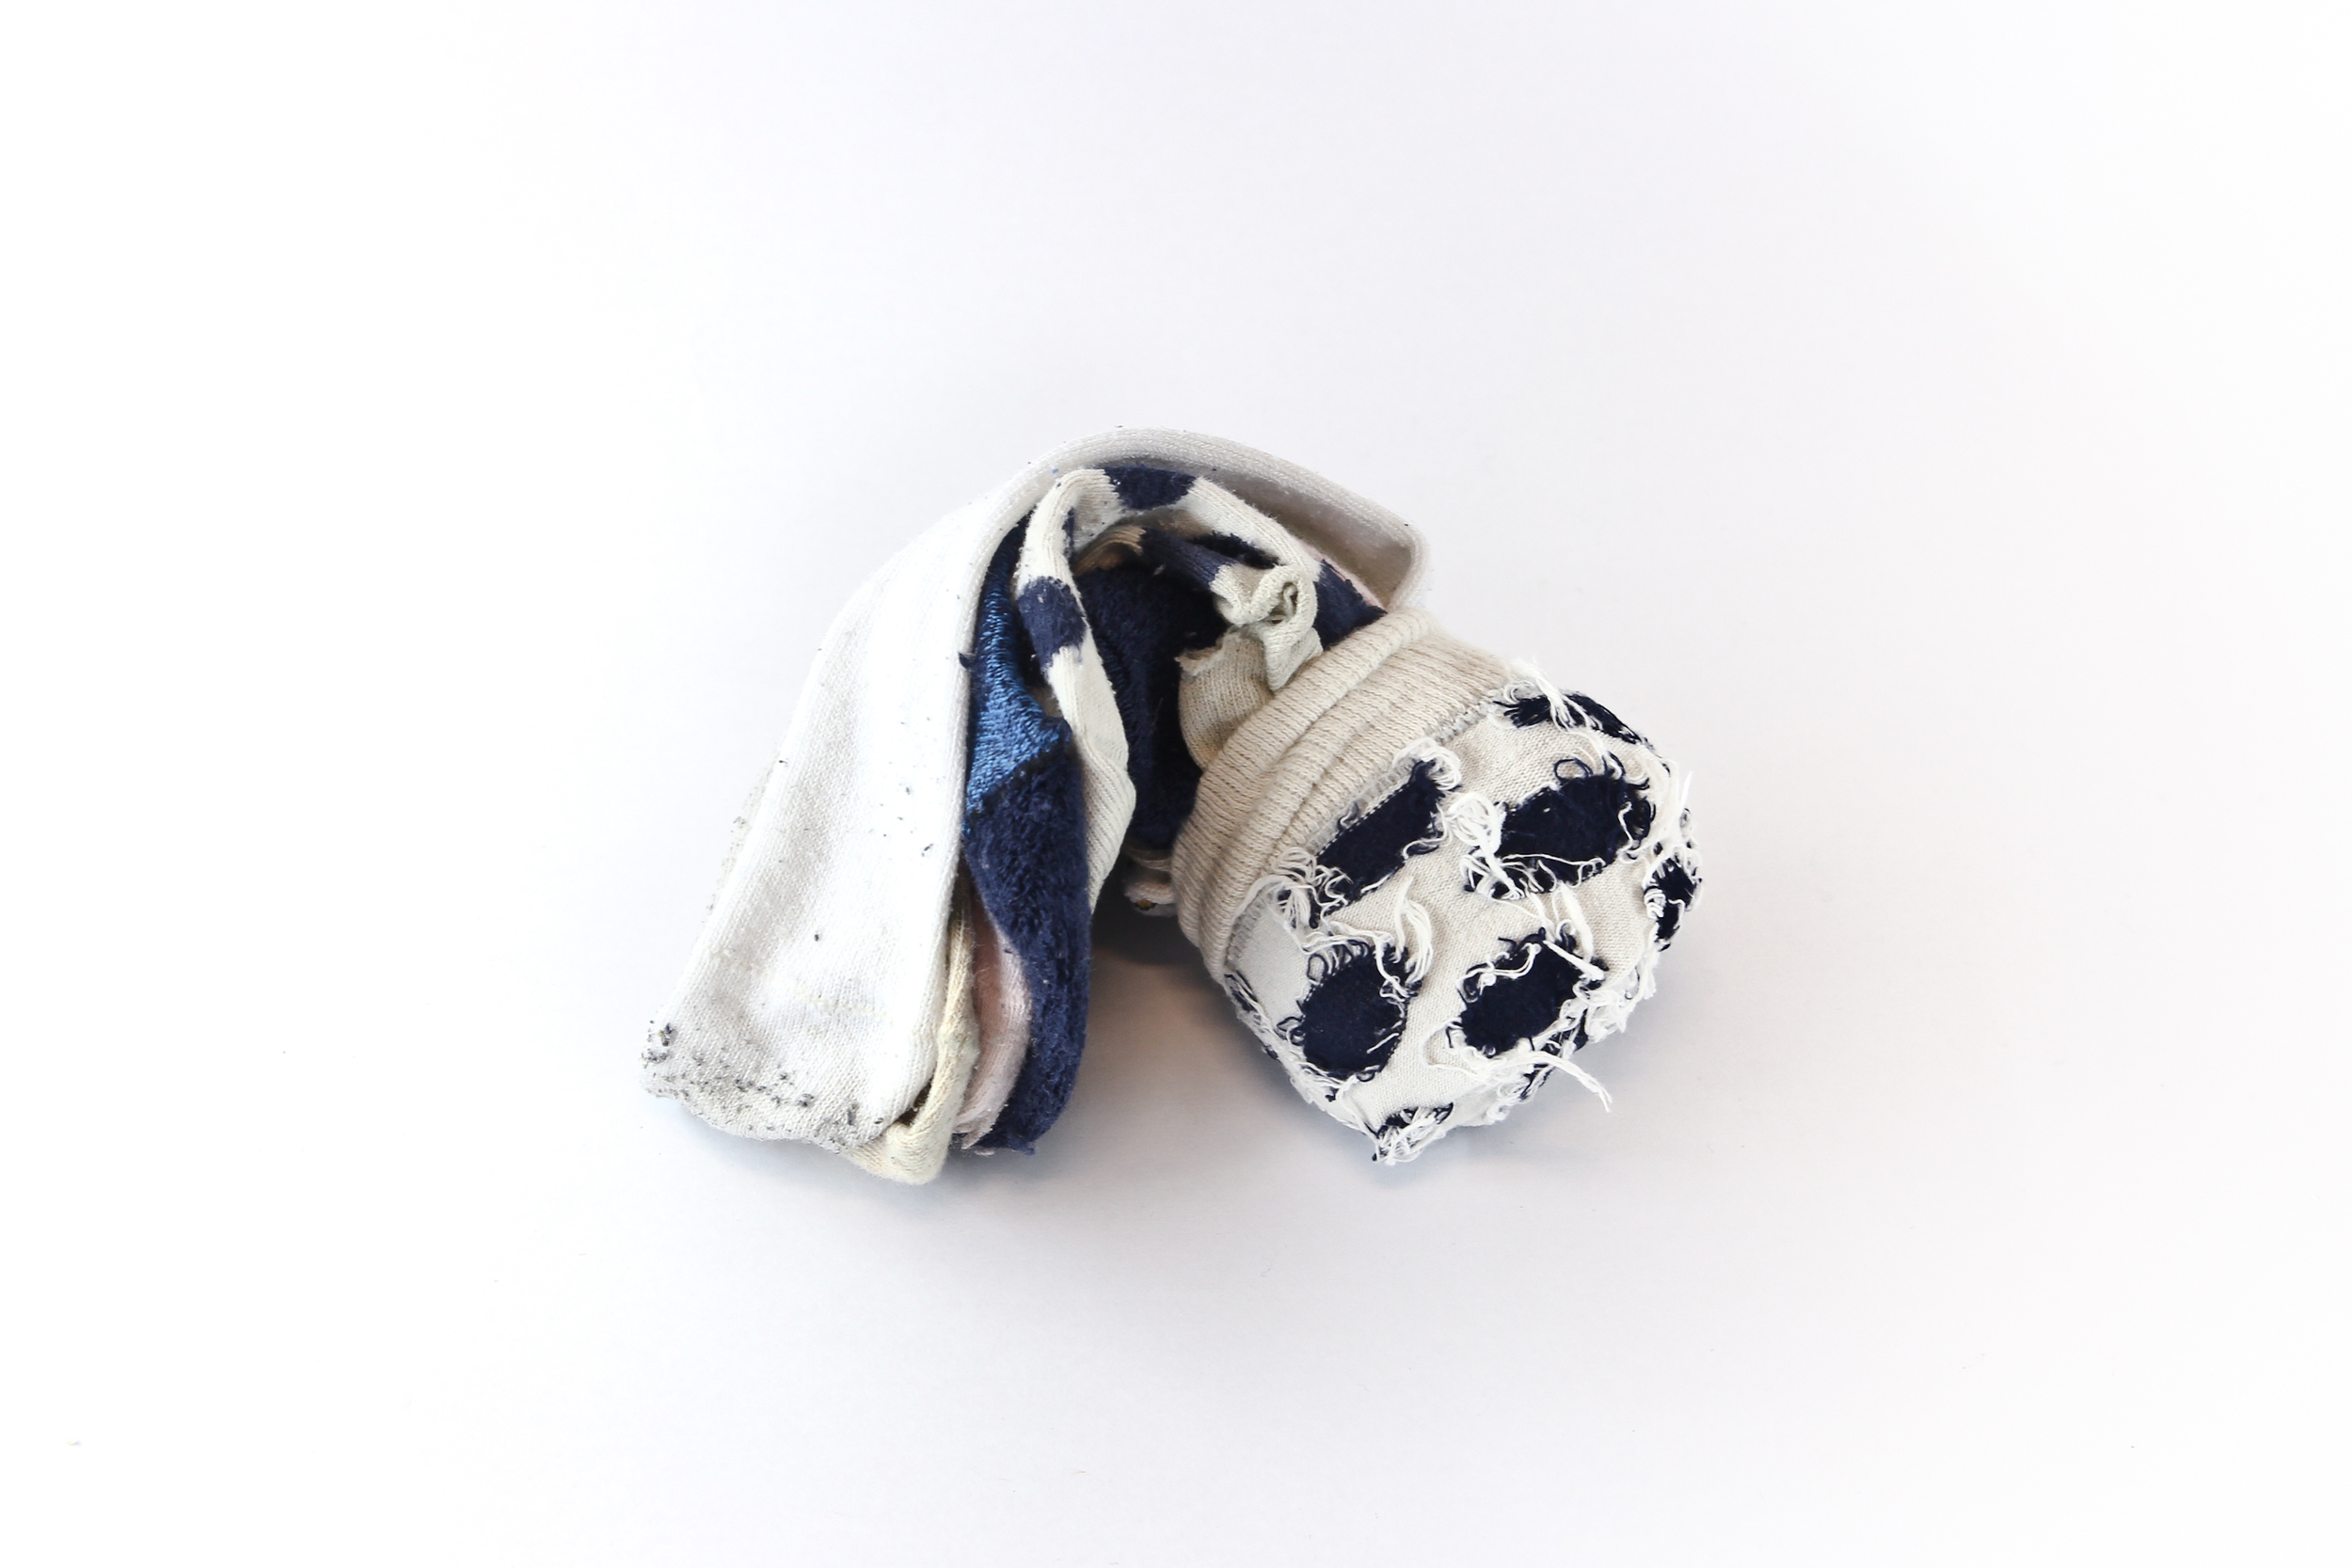 Roll of one-sided socks